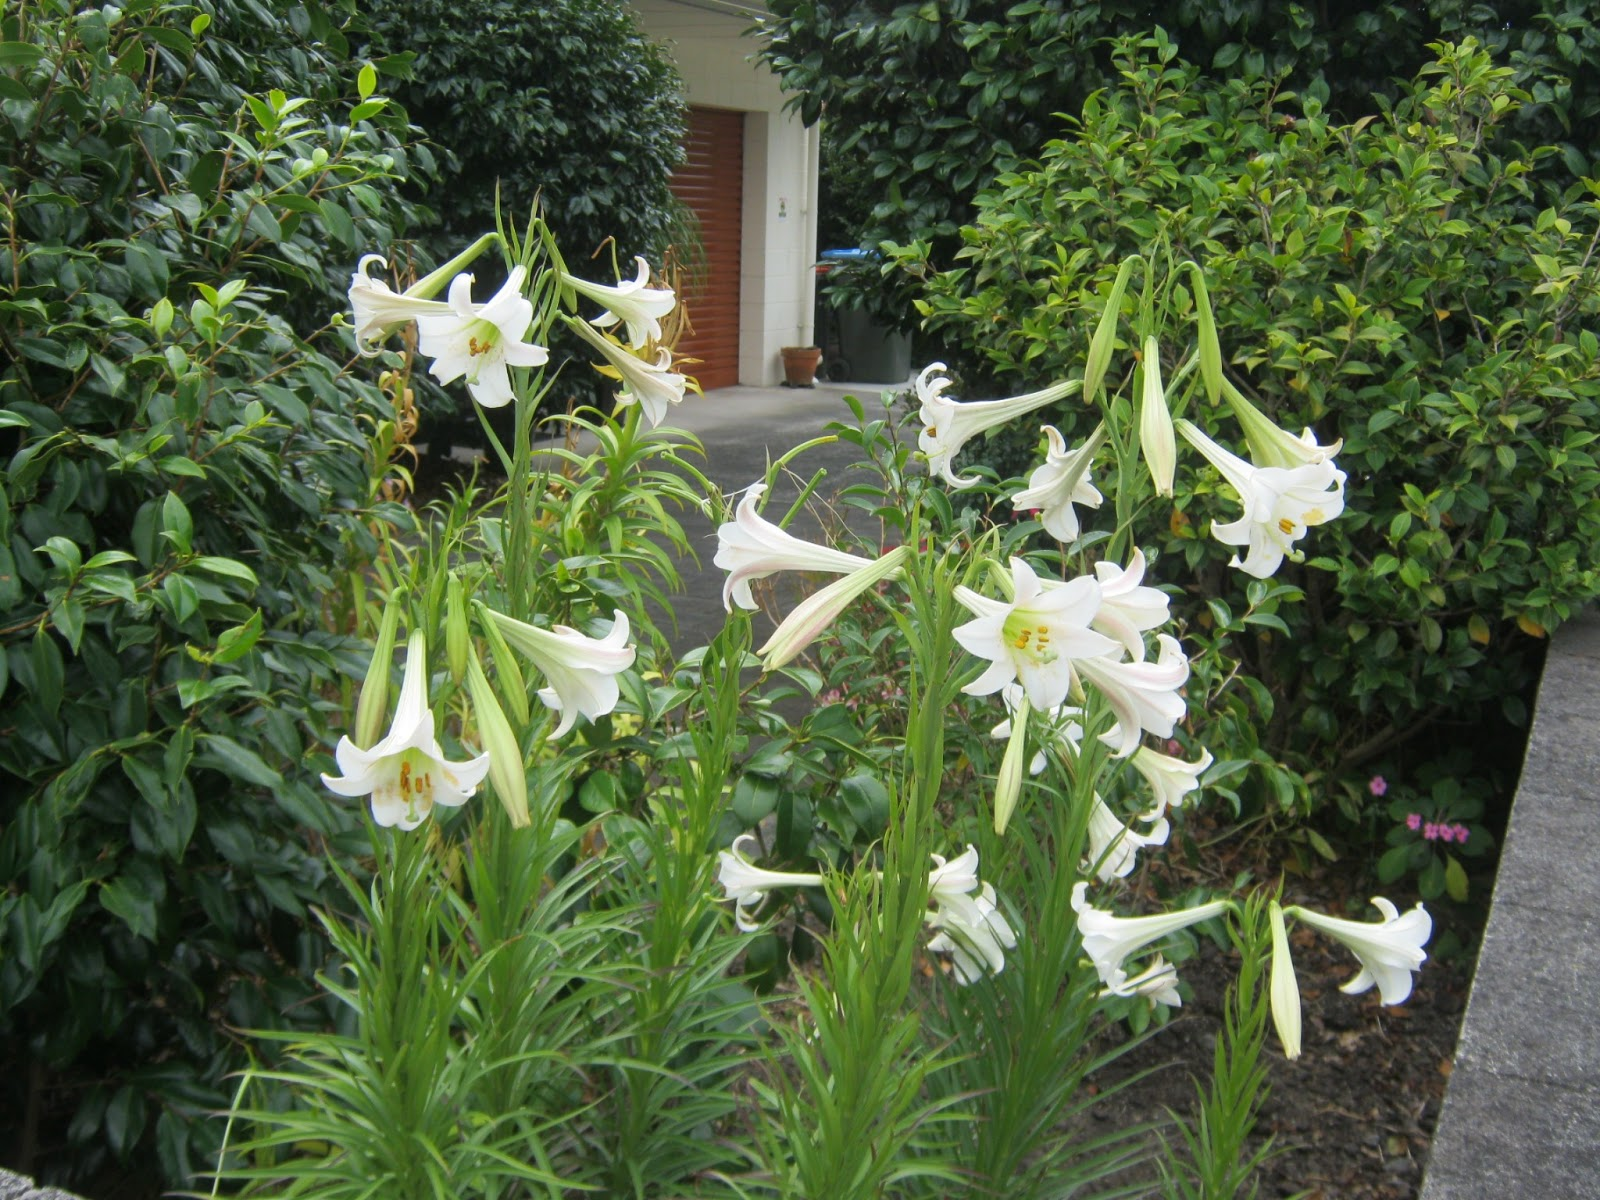 my walk with food and beautiful plants and flowers: Christmas lily